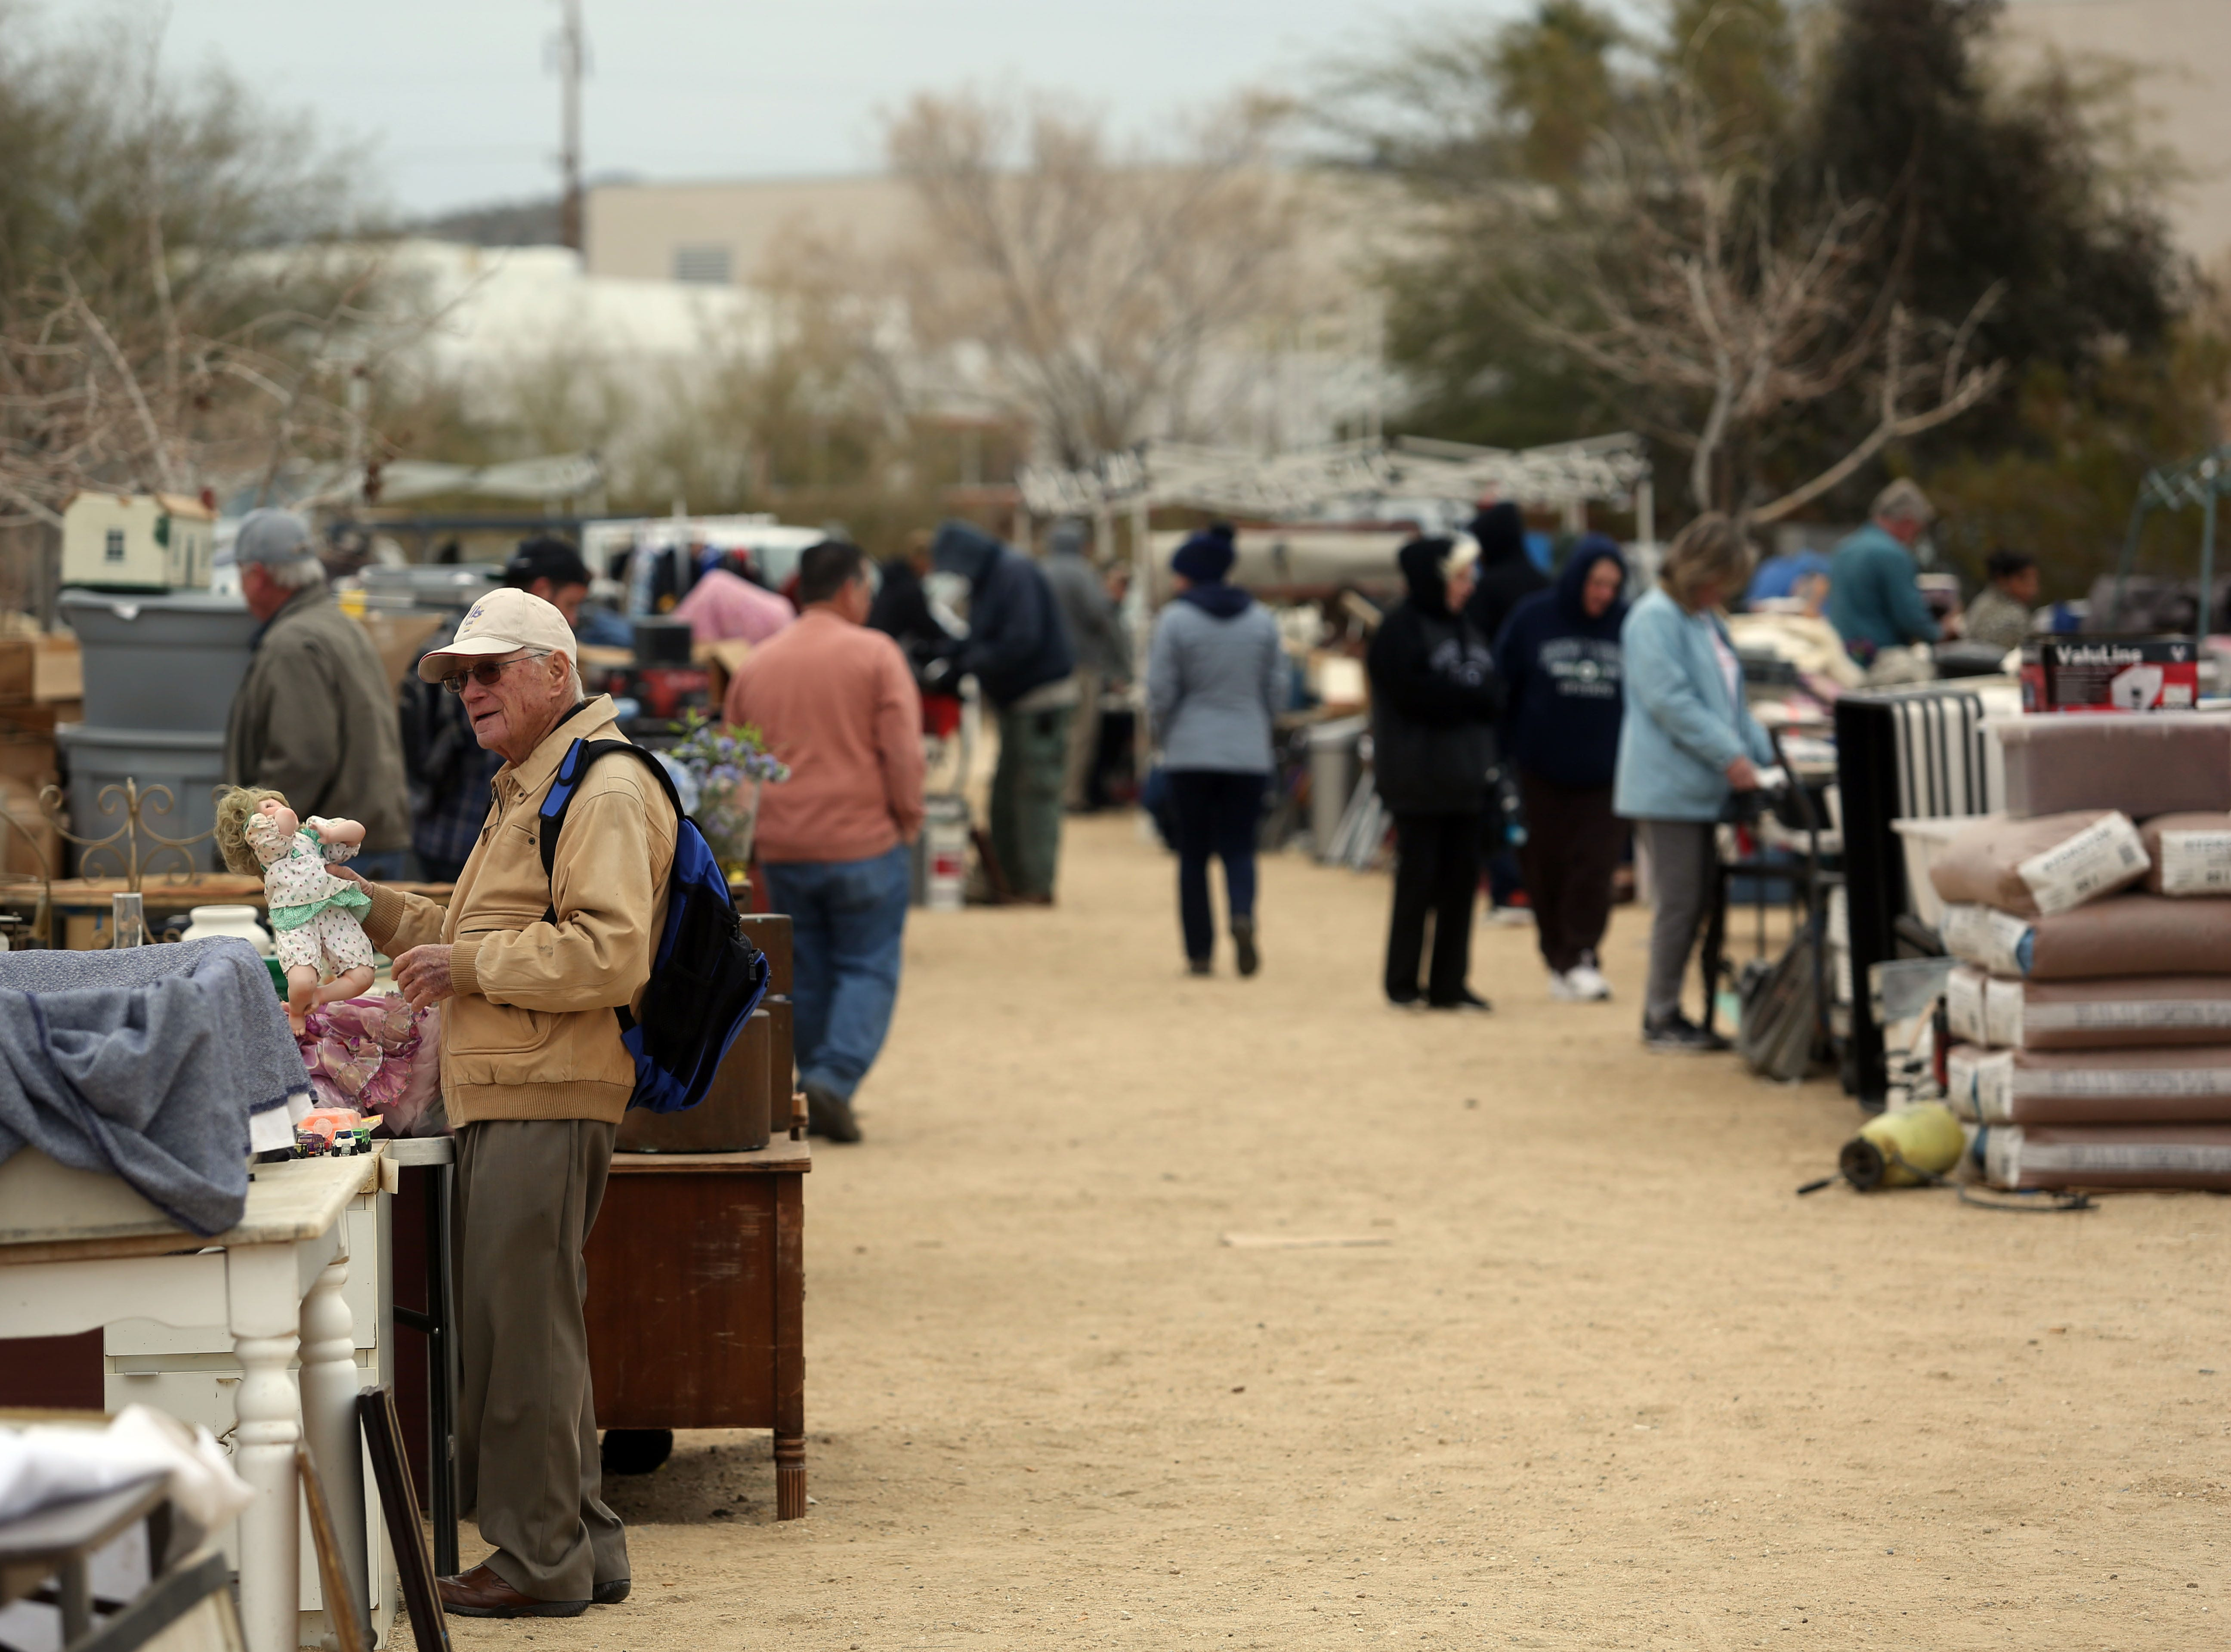 Visitors and venders at the Sky Village Swap Meet in Yucca Valley on Saturday, January 5, 2019.